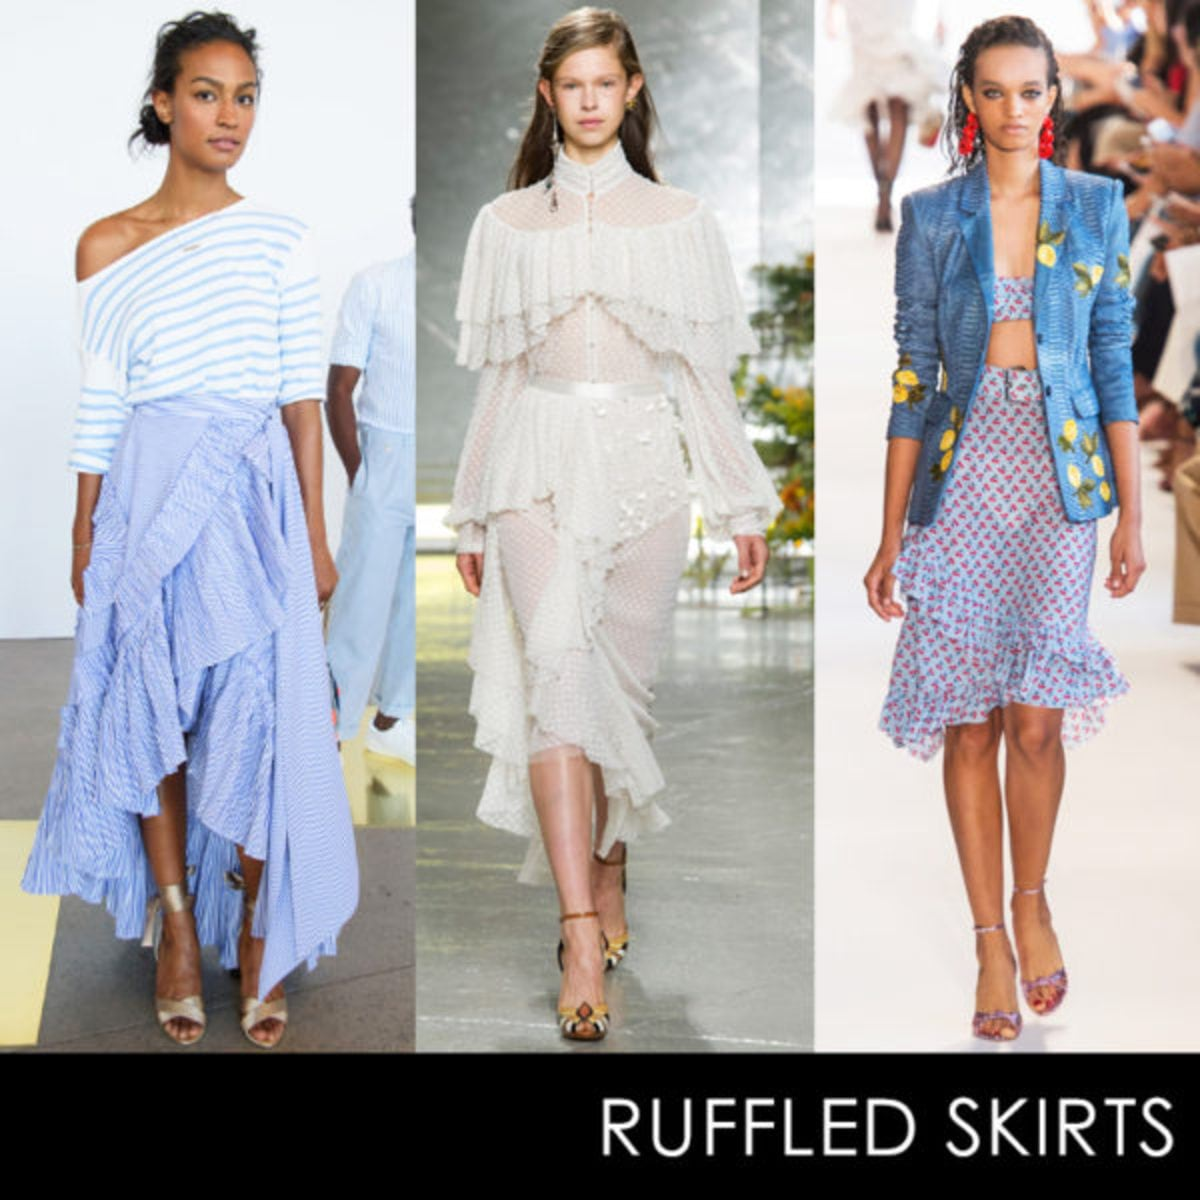 nyfw-trends-ruffled-skirts-600x600